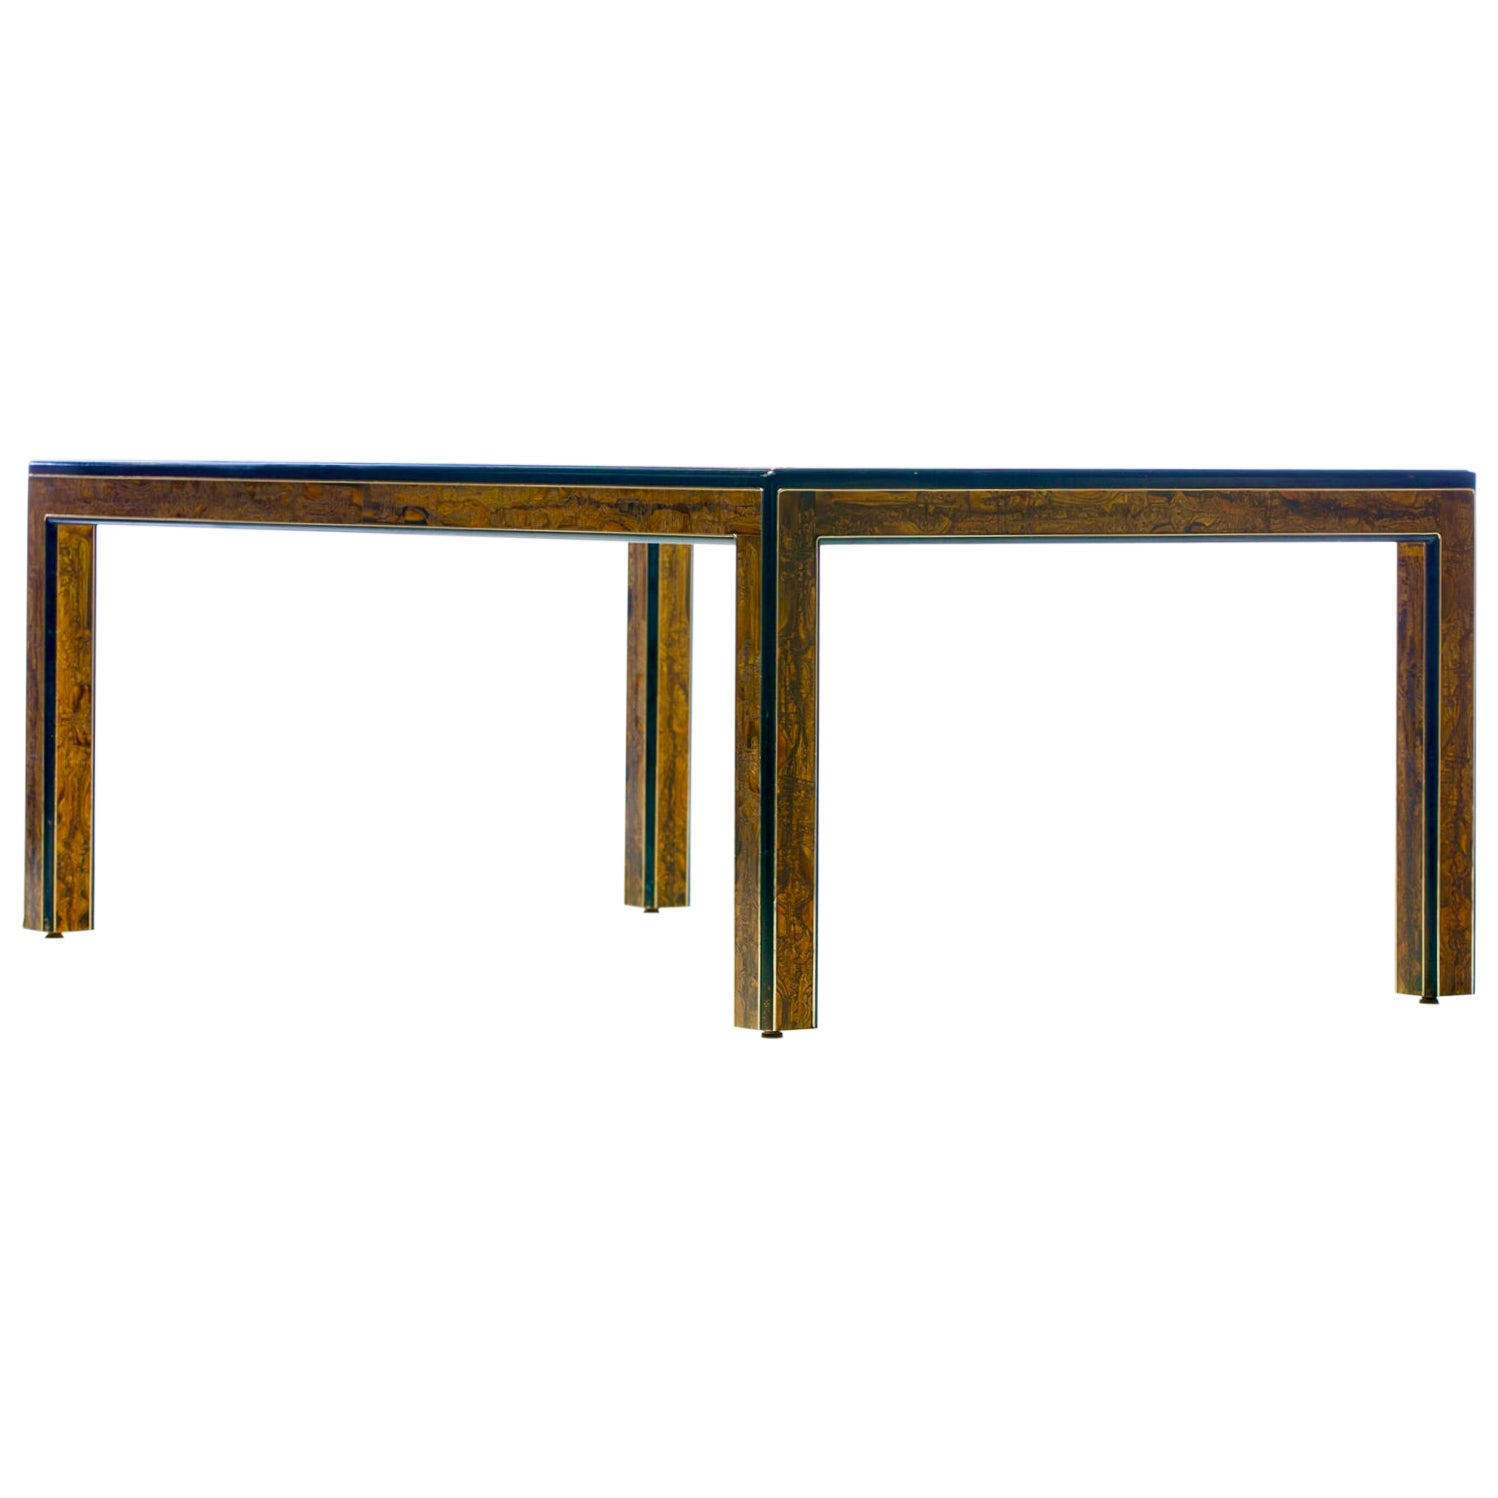 Bernhard Rohne Acid Etched Brass and Glass Dining Table for Mastercraft